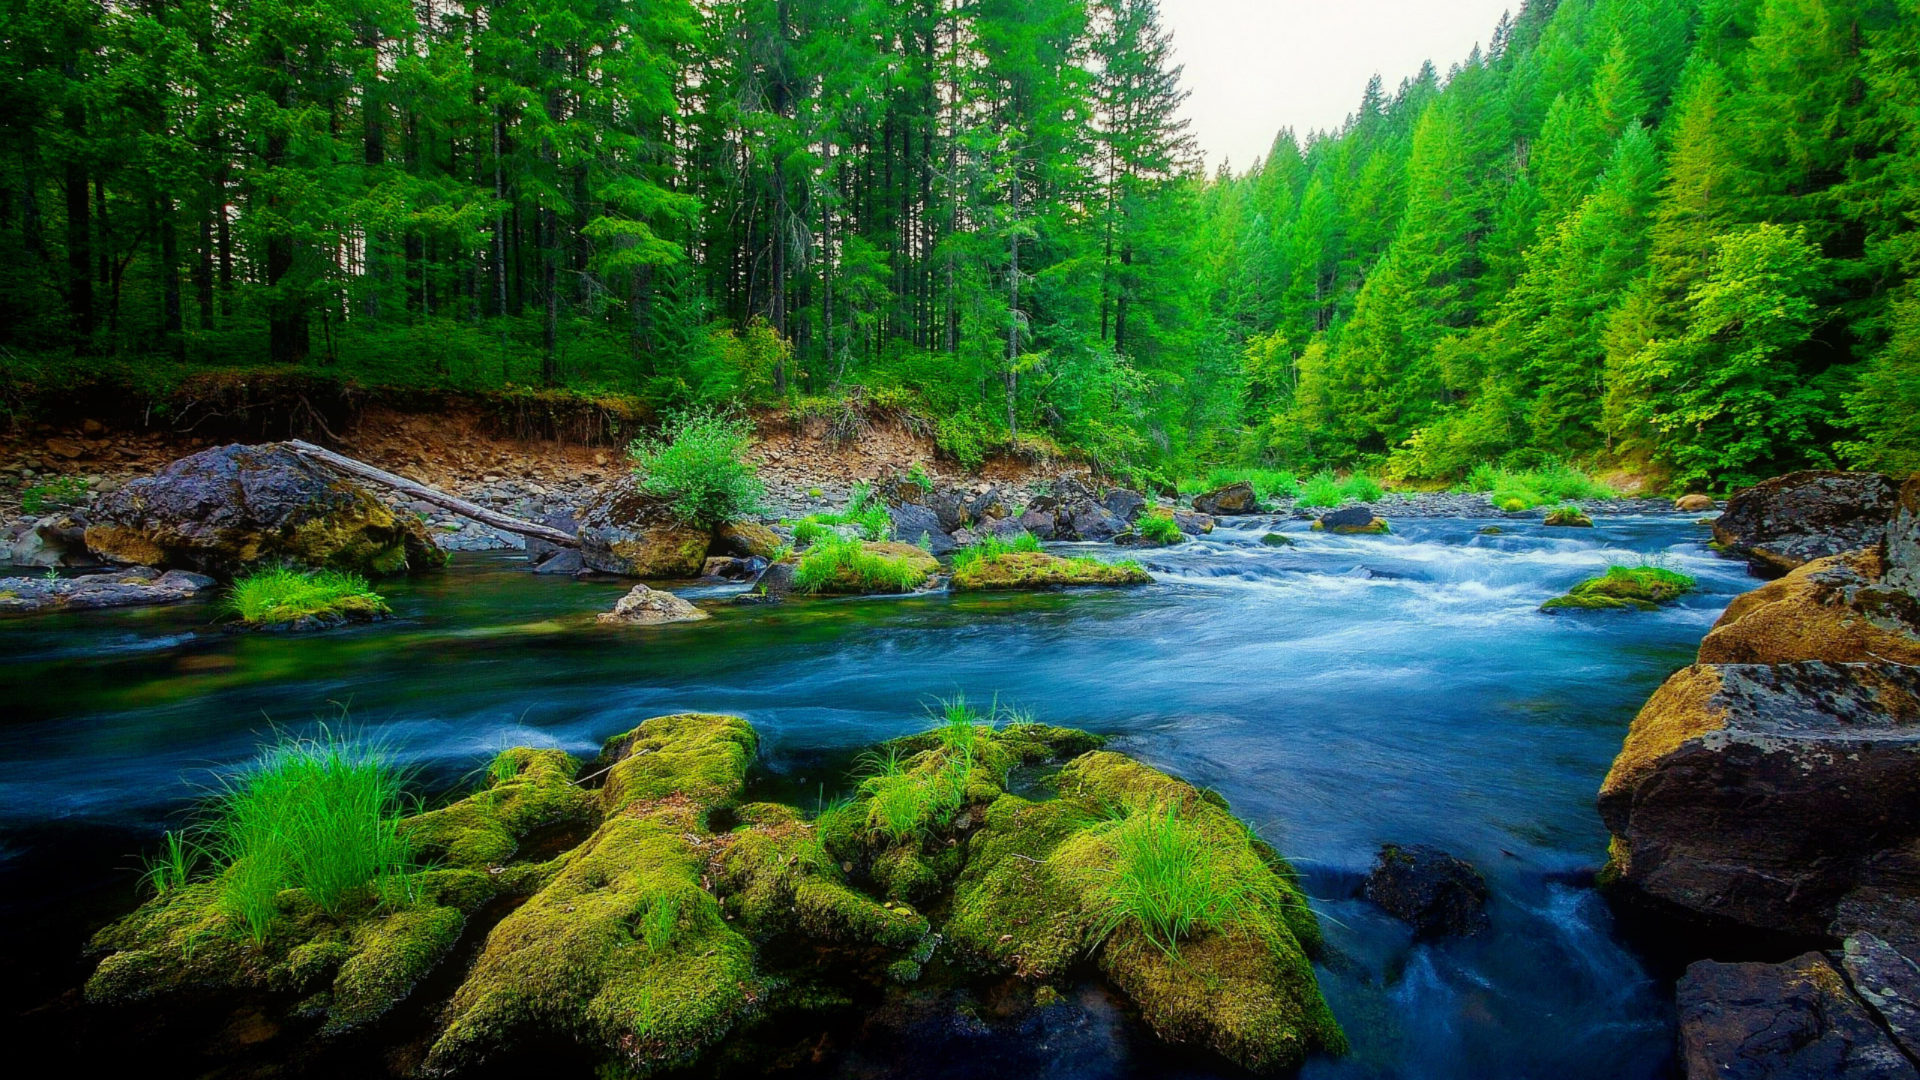 Black Lagoon Iphone X Wallpaper Green Pine Forest River Rock Beautiful Nature Hd Wallpaper